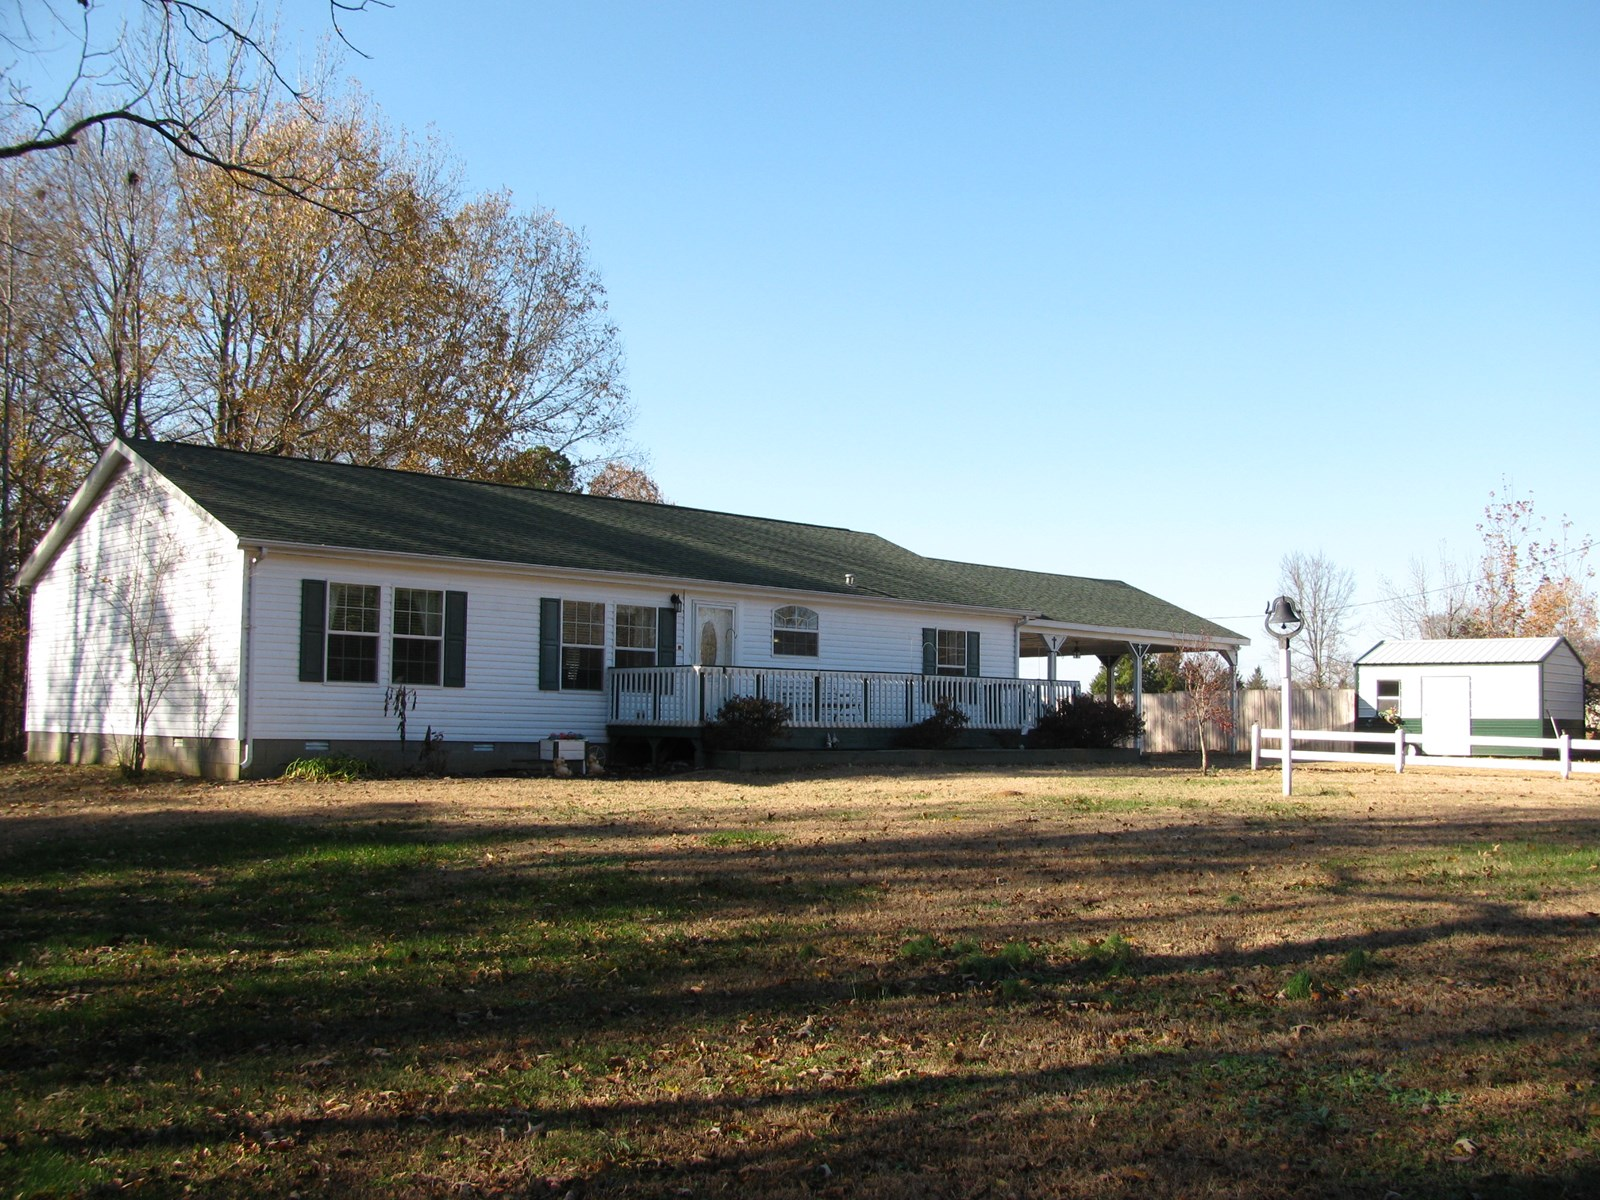 3BR COUNTRY HOME ON ACREAGE IN TN WITH SHOPS, MINI FARM